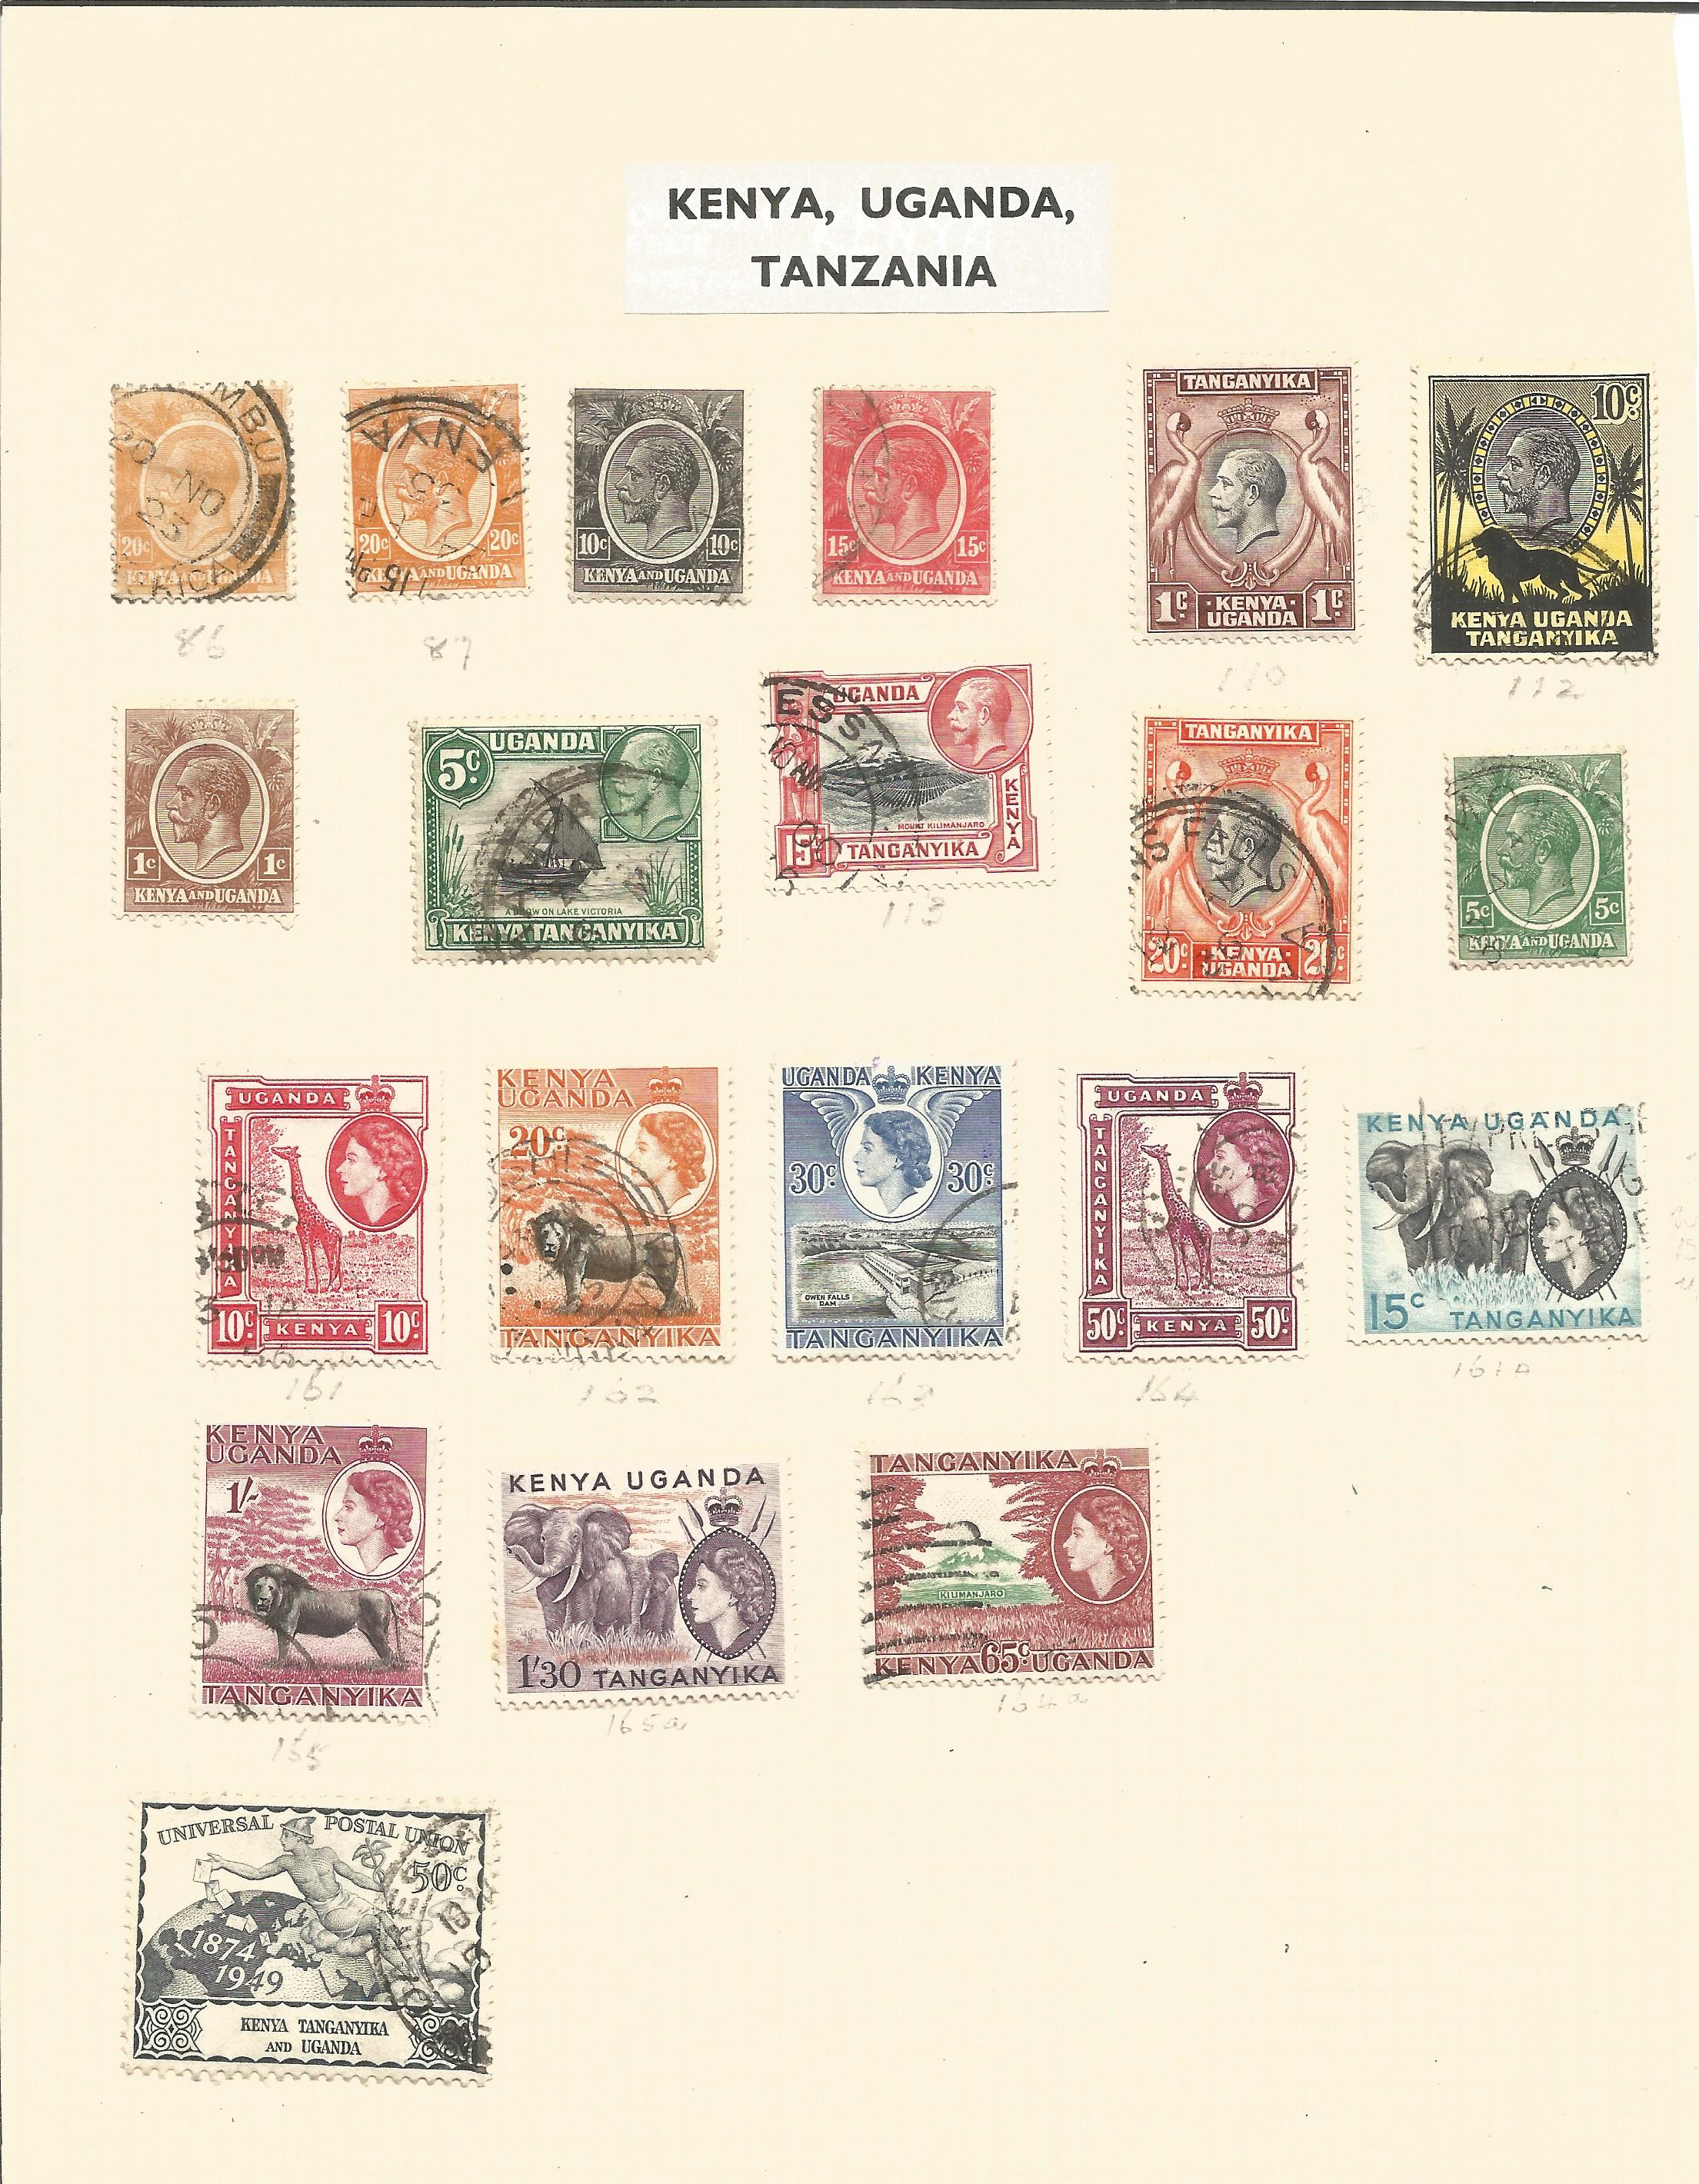 Kenya, Uganda and Tanzania stamp collection on 2 album pages. Good condition. We combine postage